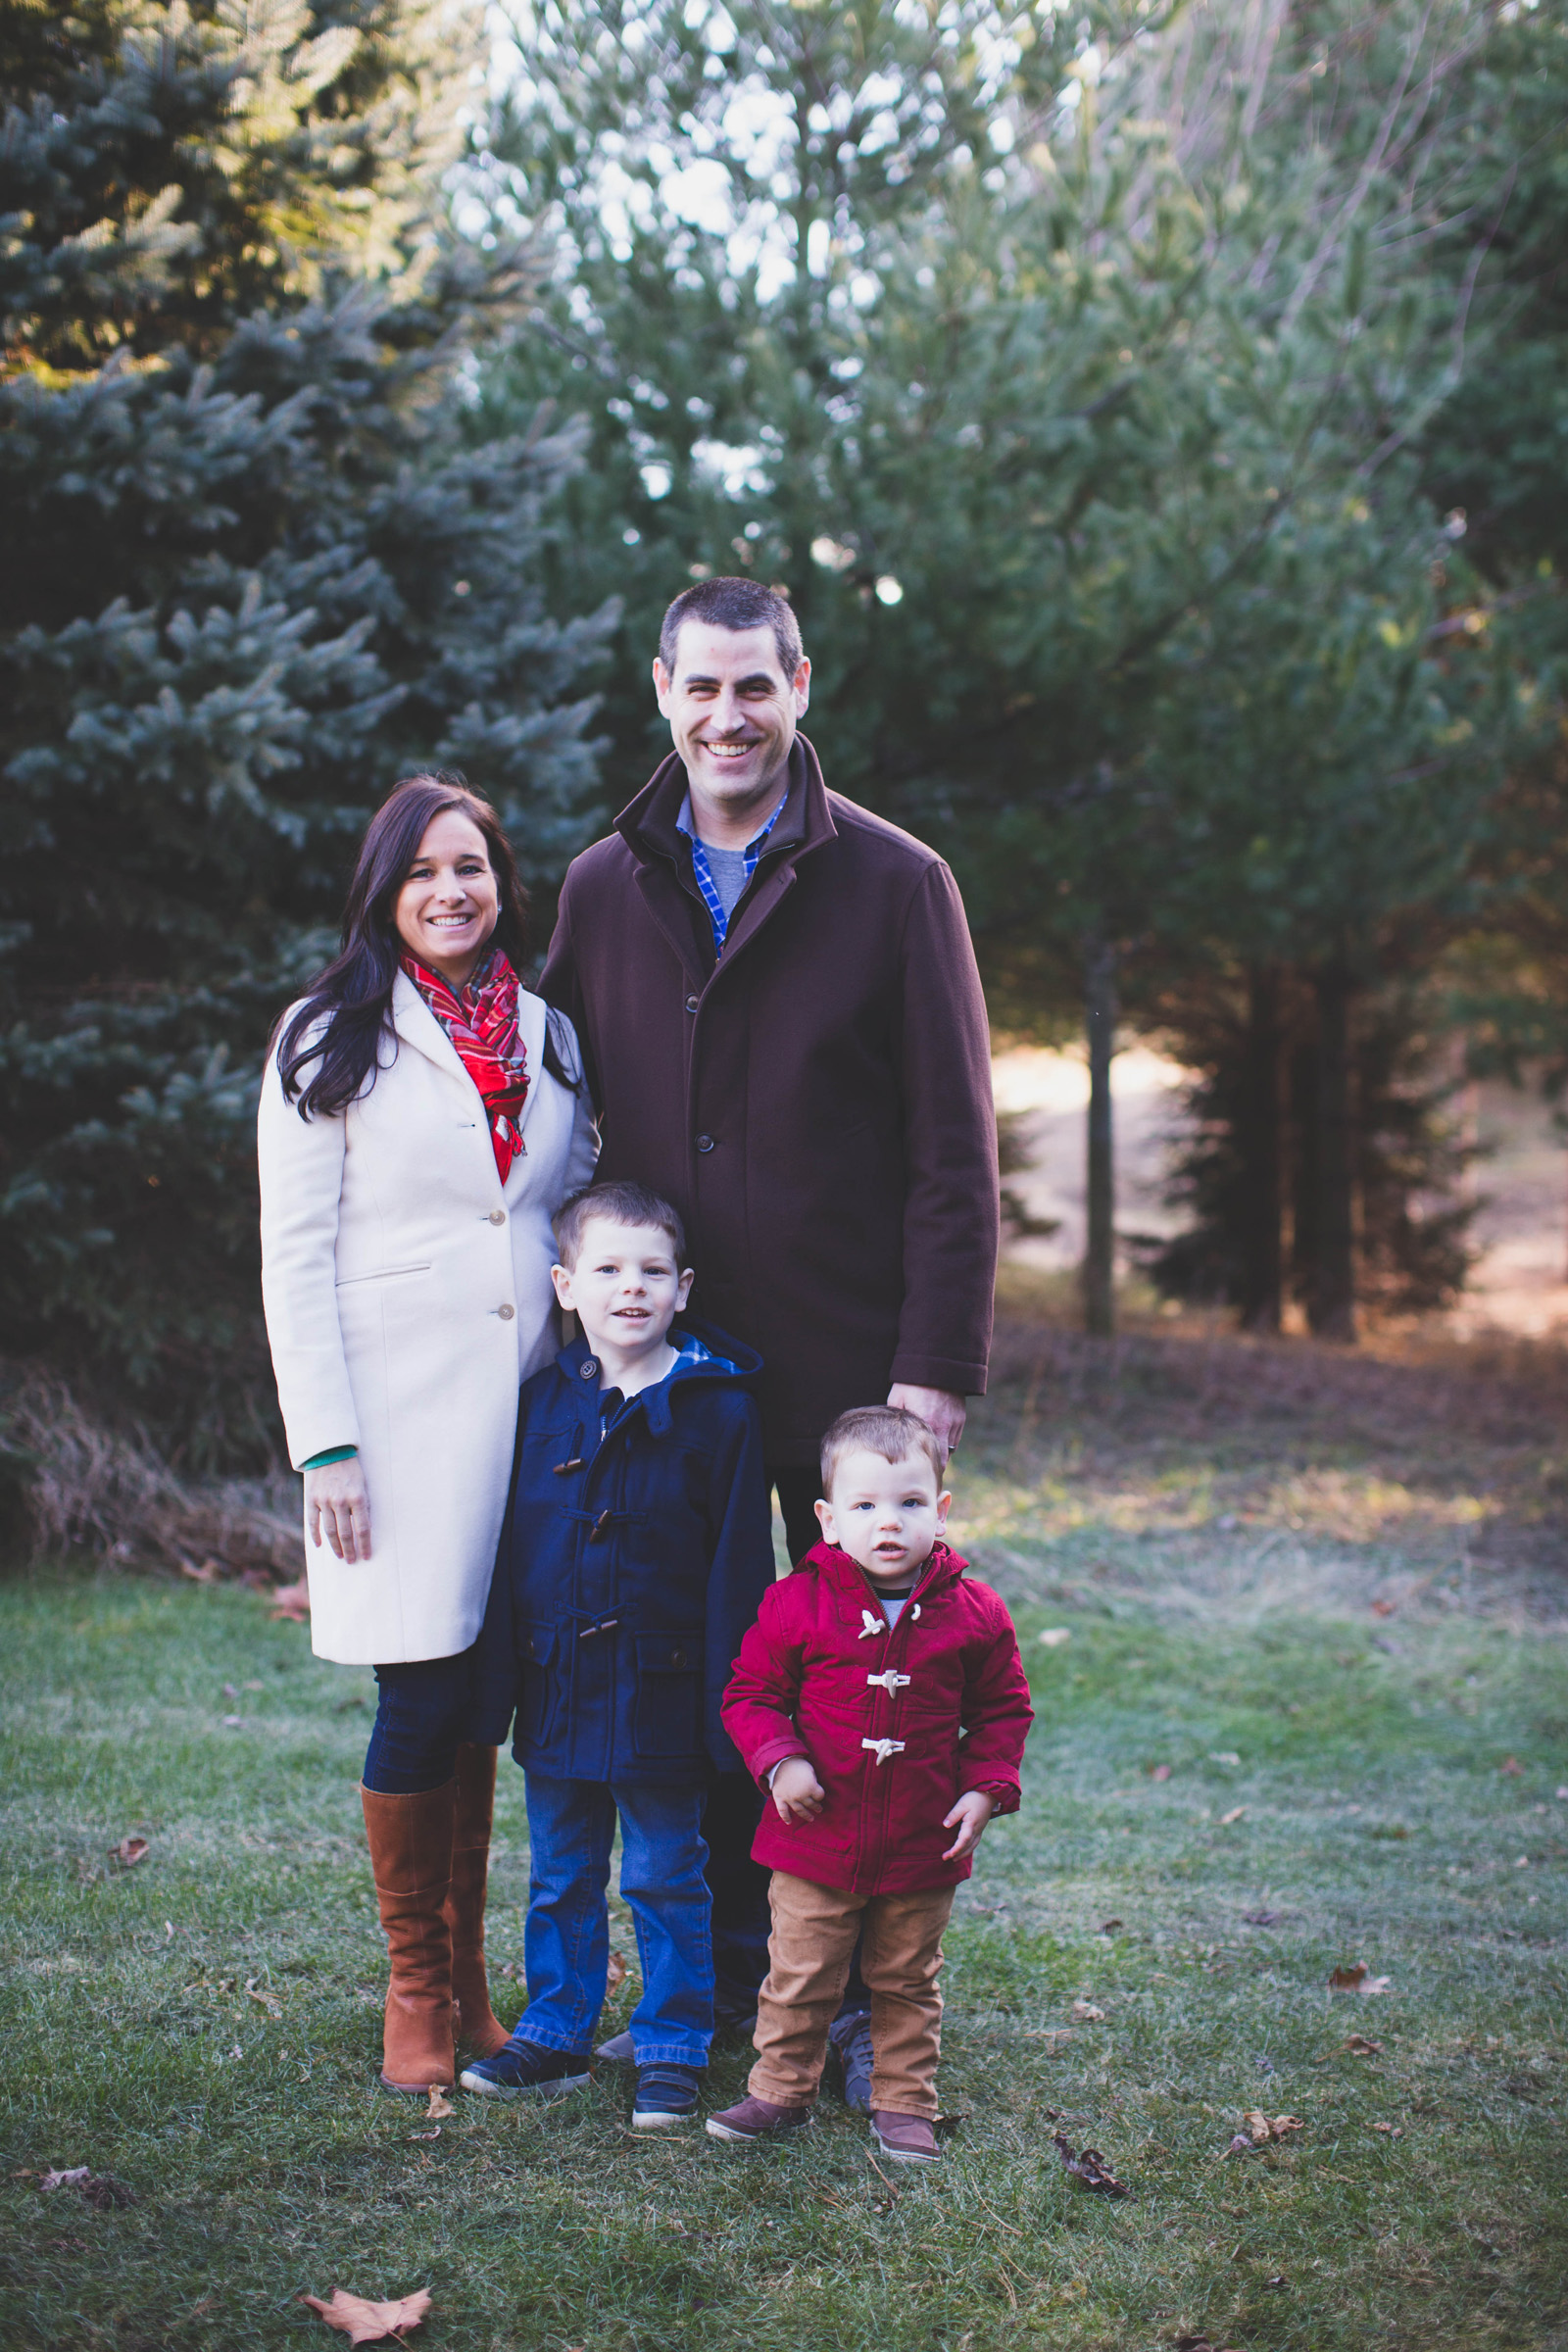 midwest family photographer 01.jpg